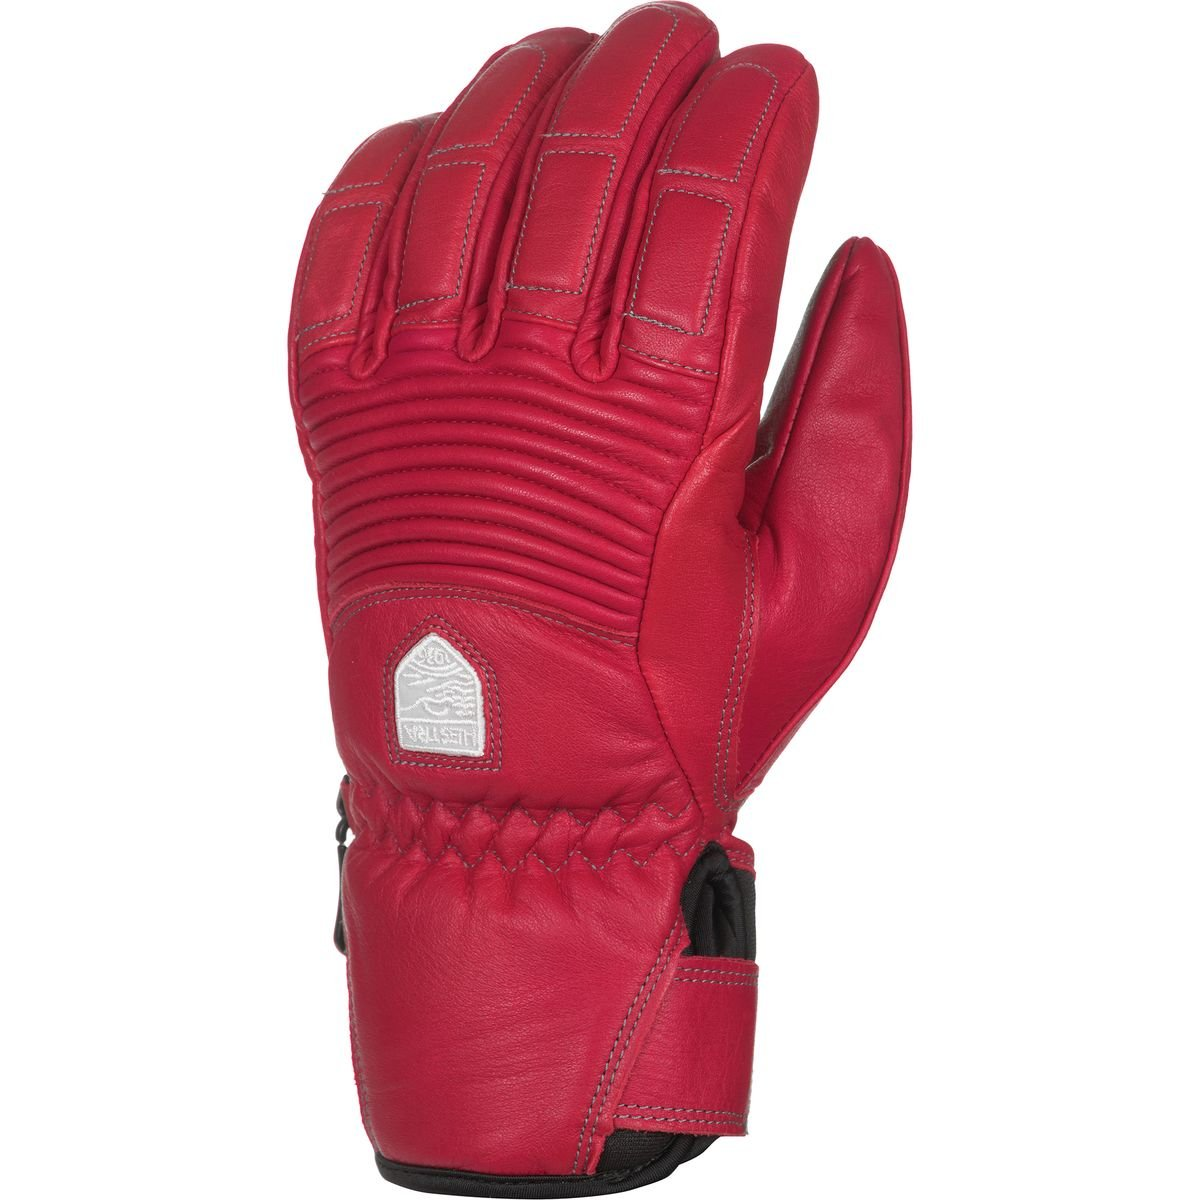 Hestra Gloves 30210 Women's Leather Fall Line, Red/Red - 7